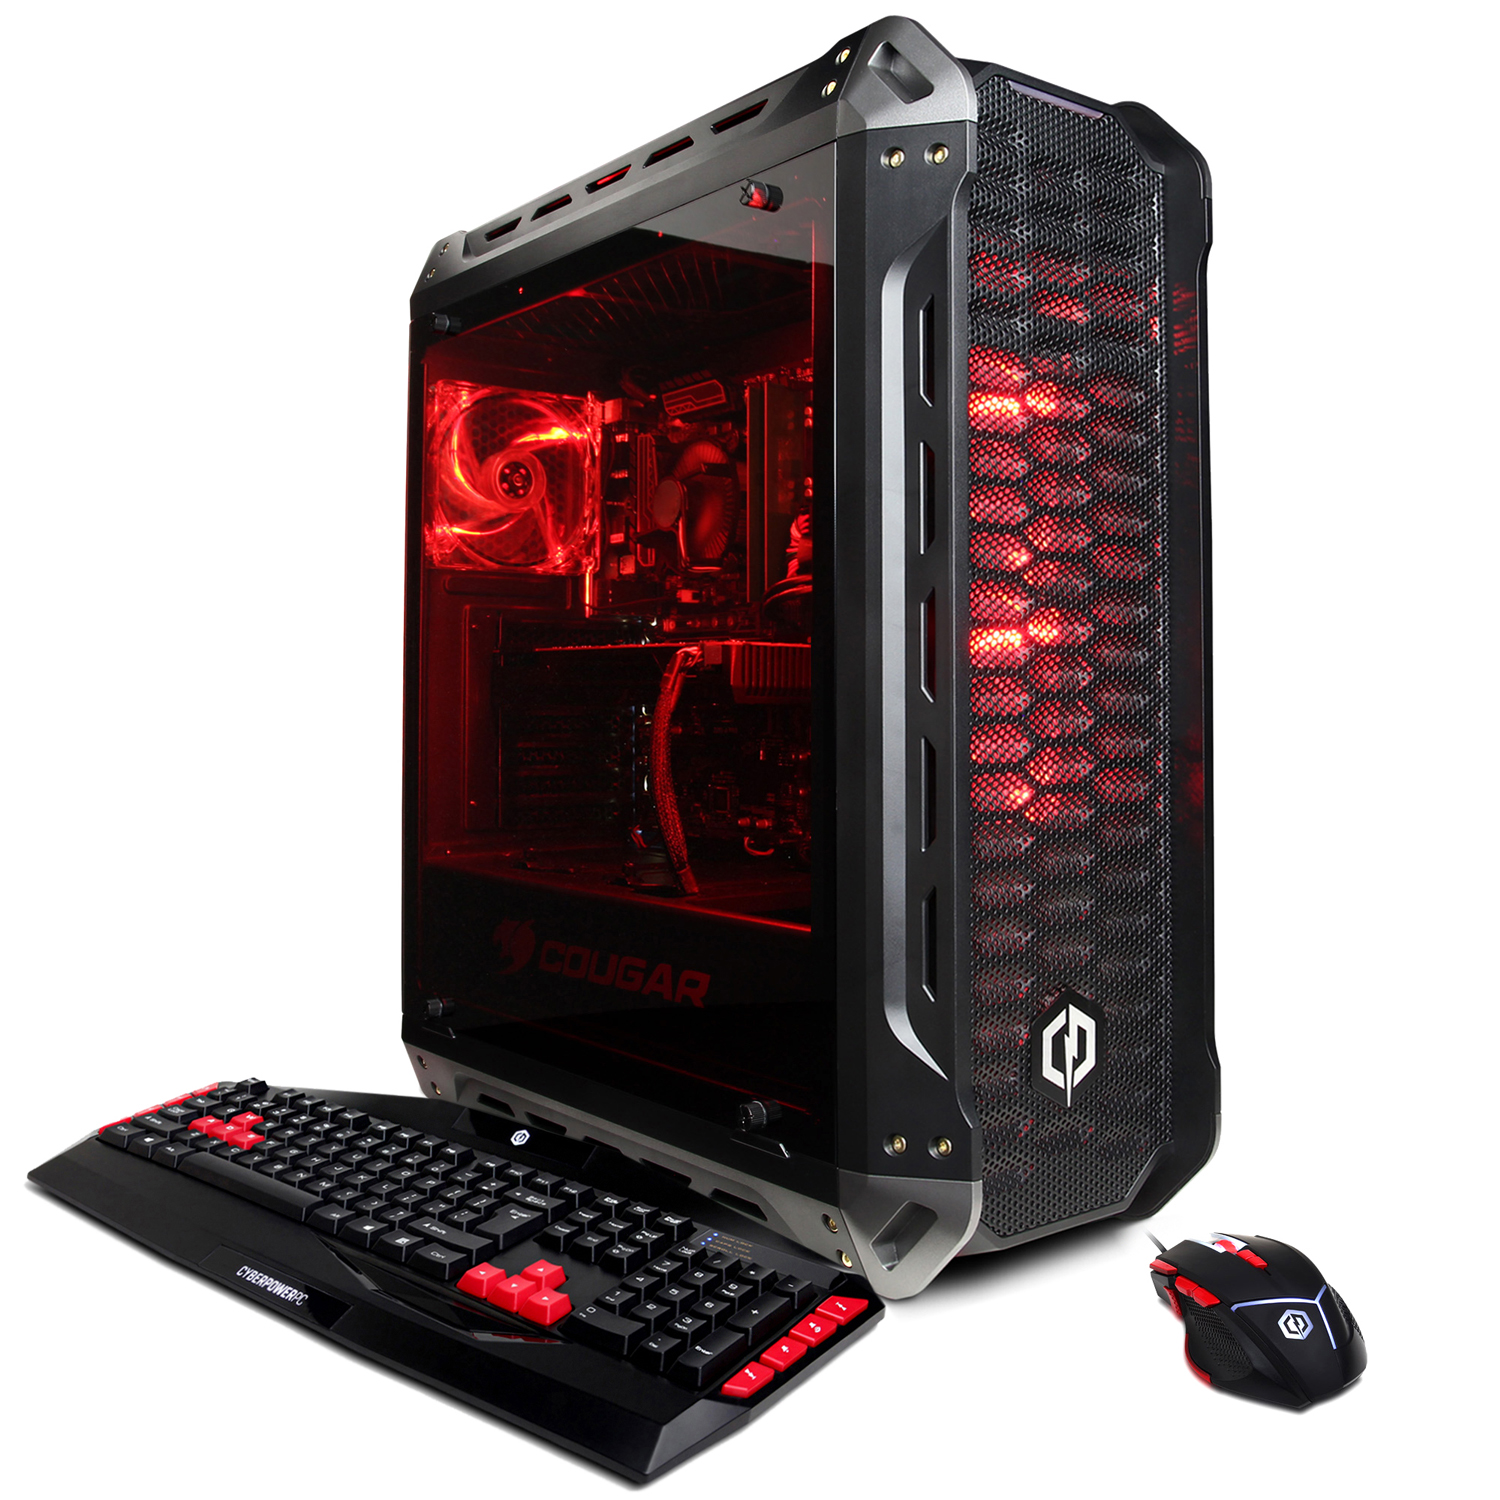 CYBERPOWERPC Gamer Xtreme GXi11020CPG w/ Intel i78700, Nvidia GeForce RTX 2060 6GB, 16GB Memory, 2TB HD and Windows 10 Home 64bit Gaming Computer